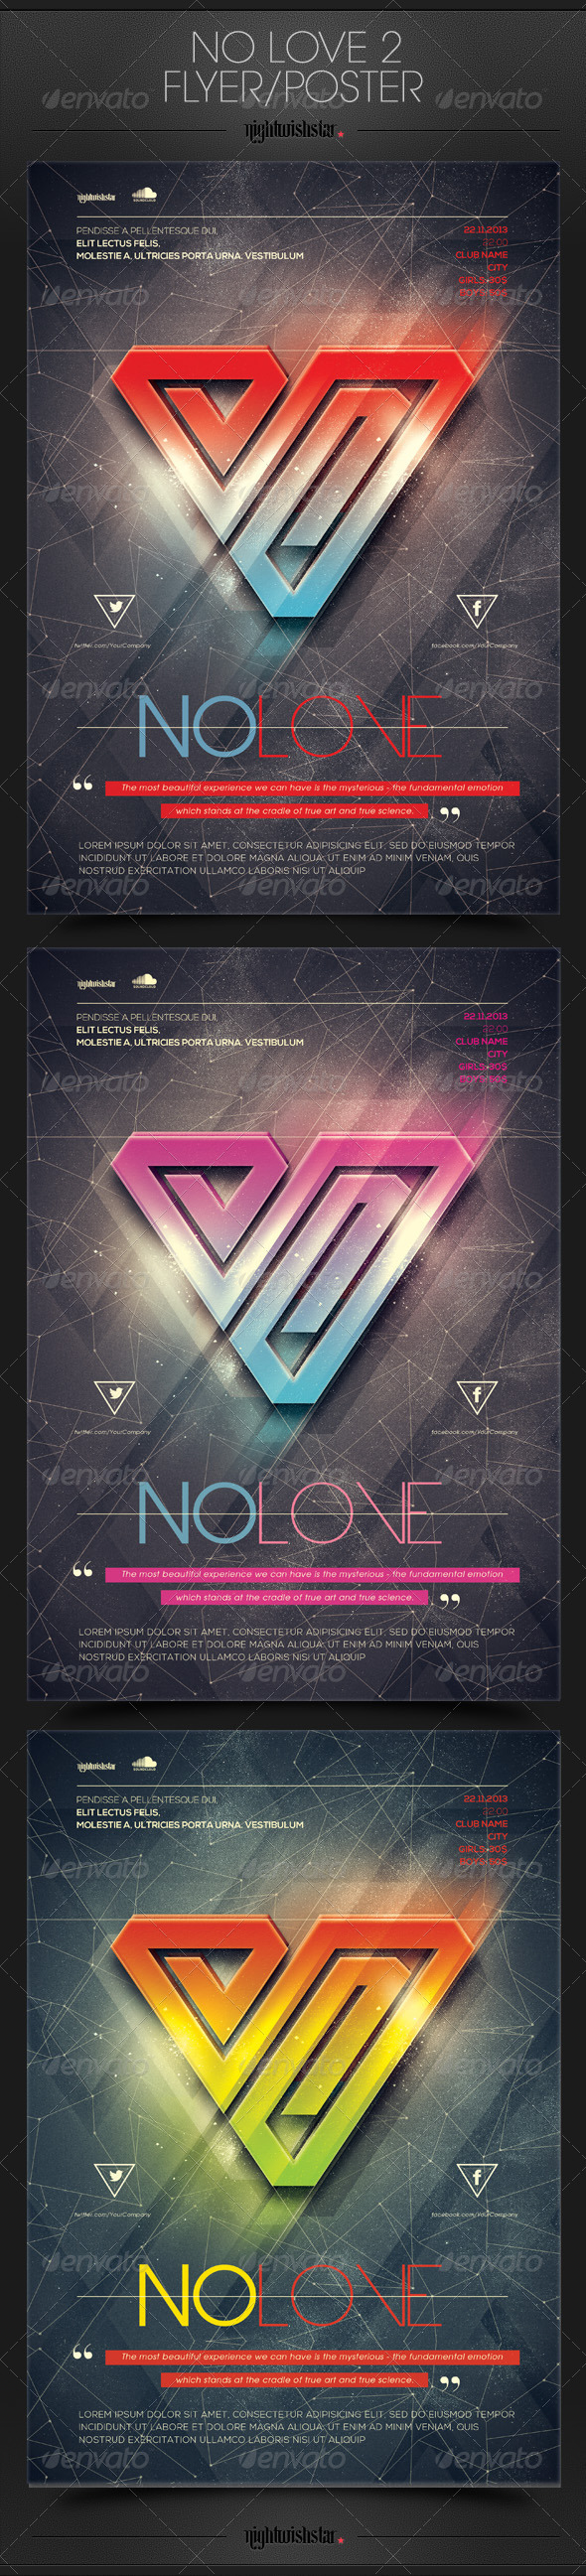 GraphicRiver No Love 2 Poster Flyer 6576405